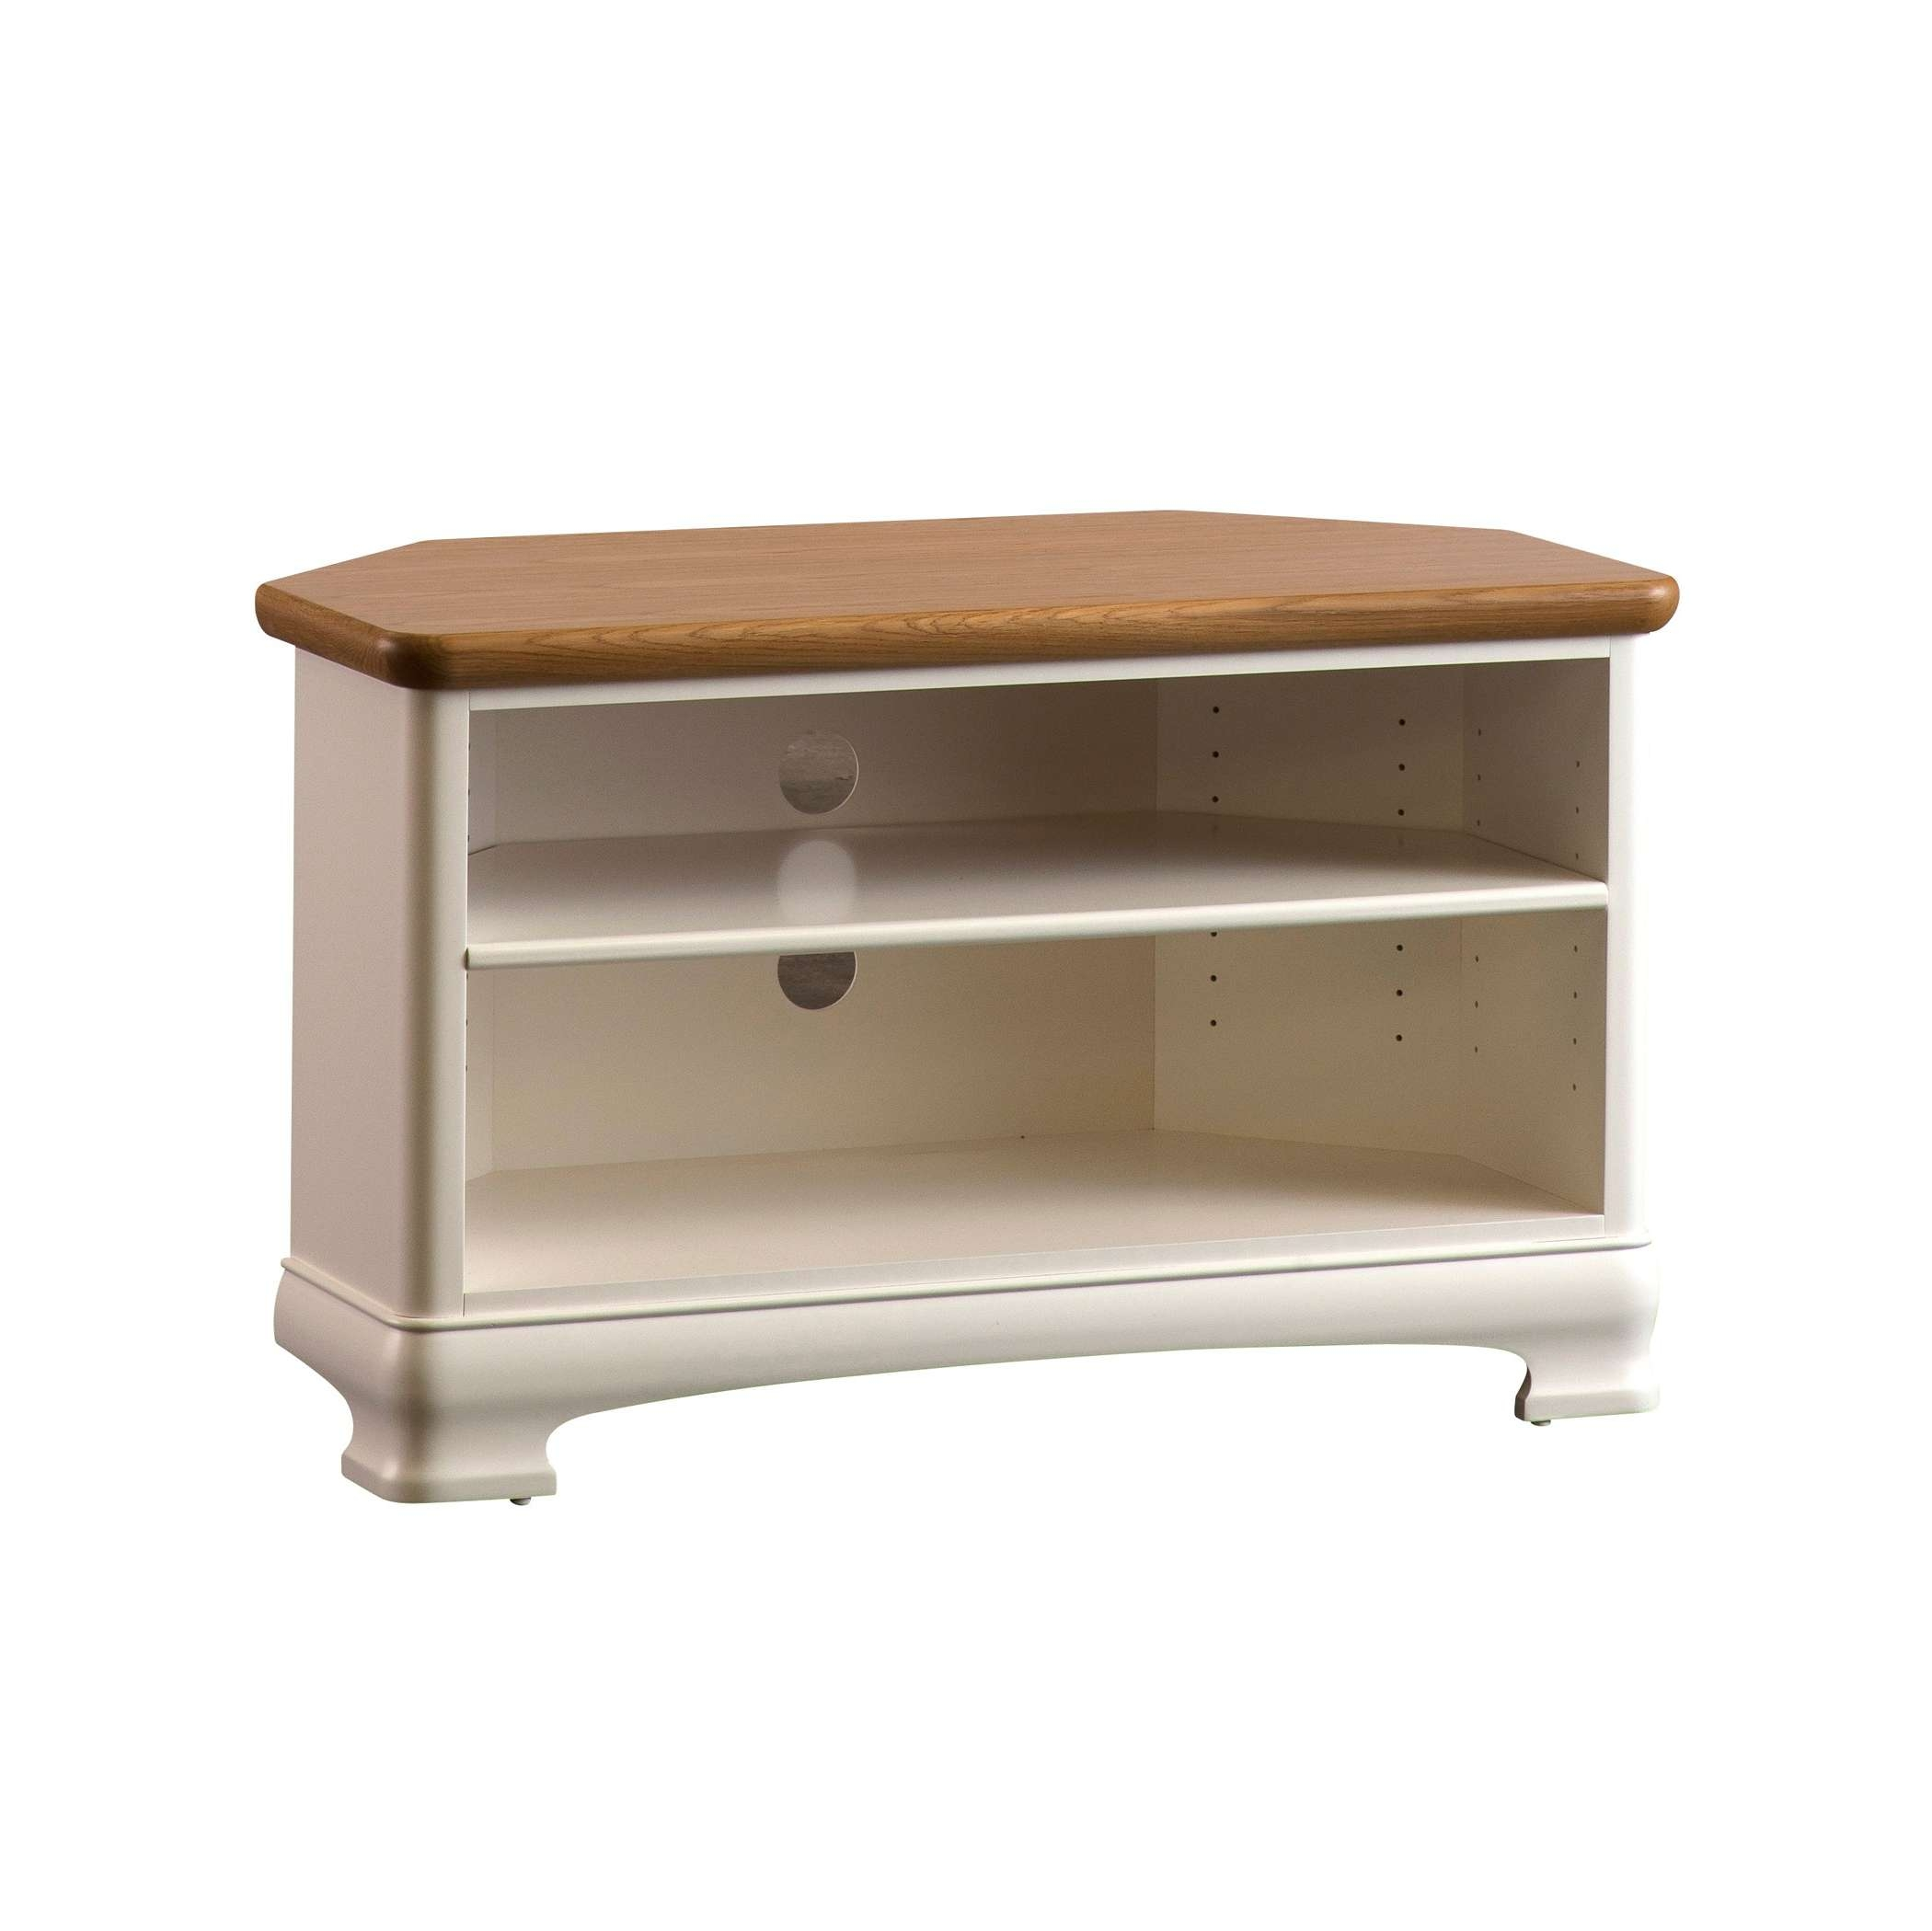 Painted Corner Tv Stand | Gola Furniture Uk With Regard To Painted Tv Stands (View 3 of 15)